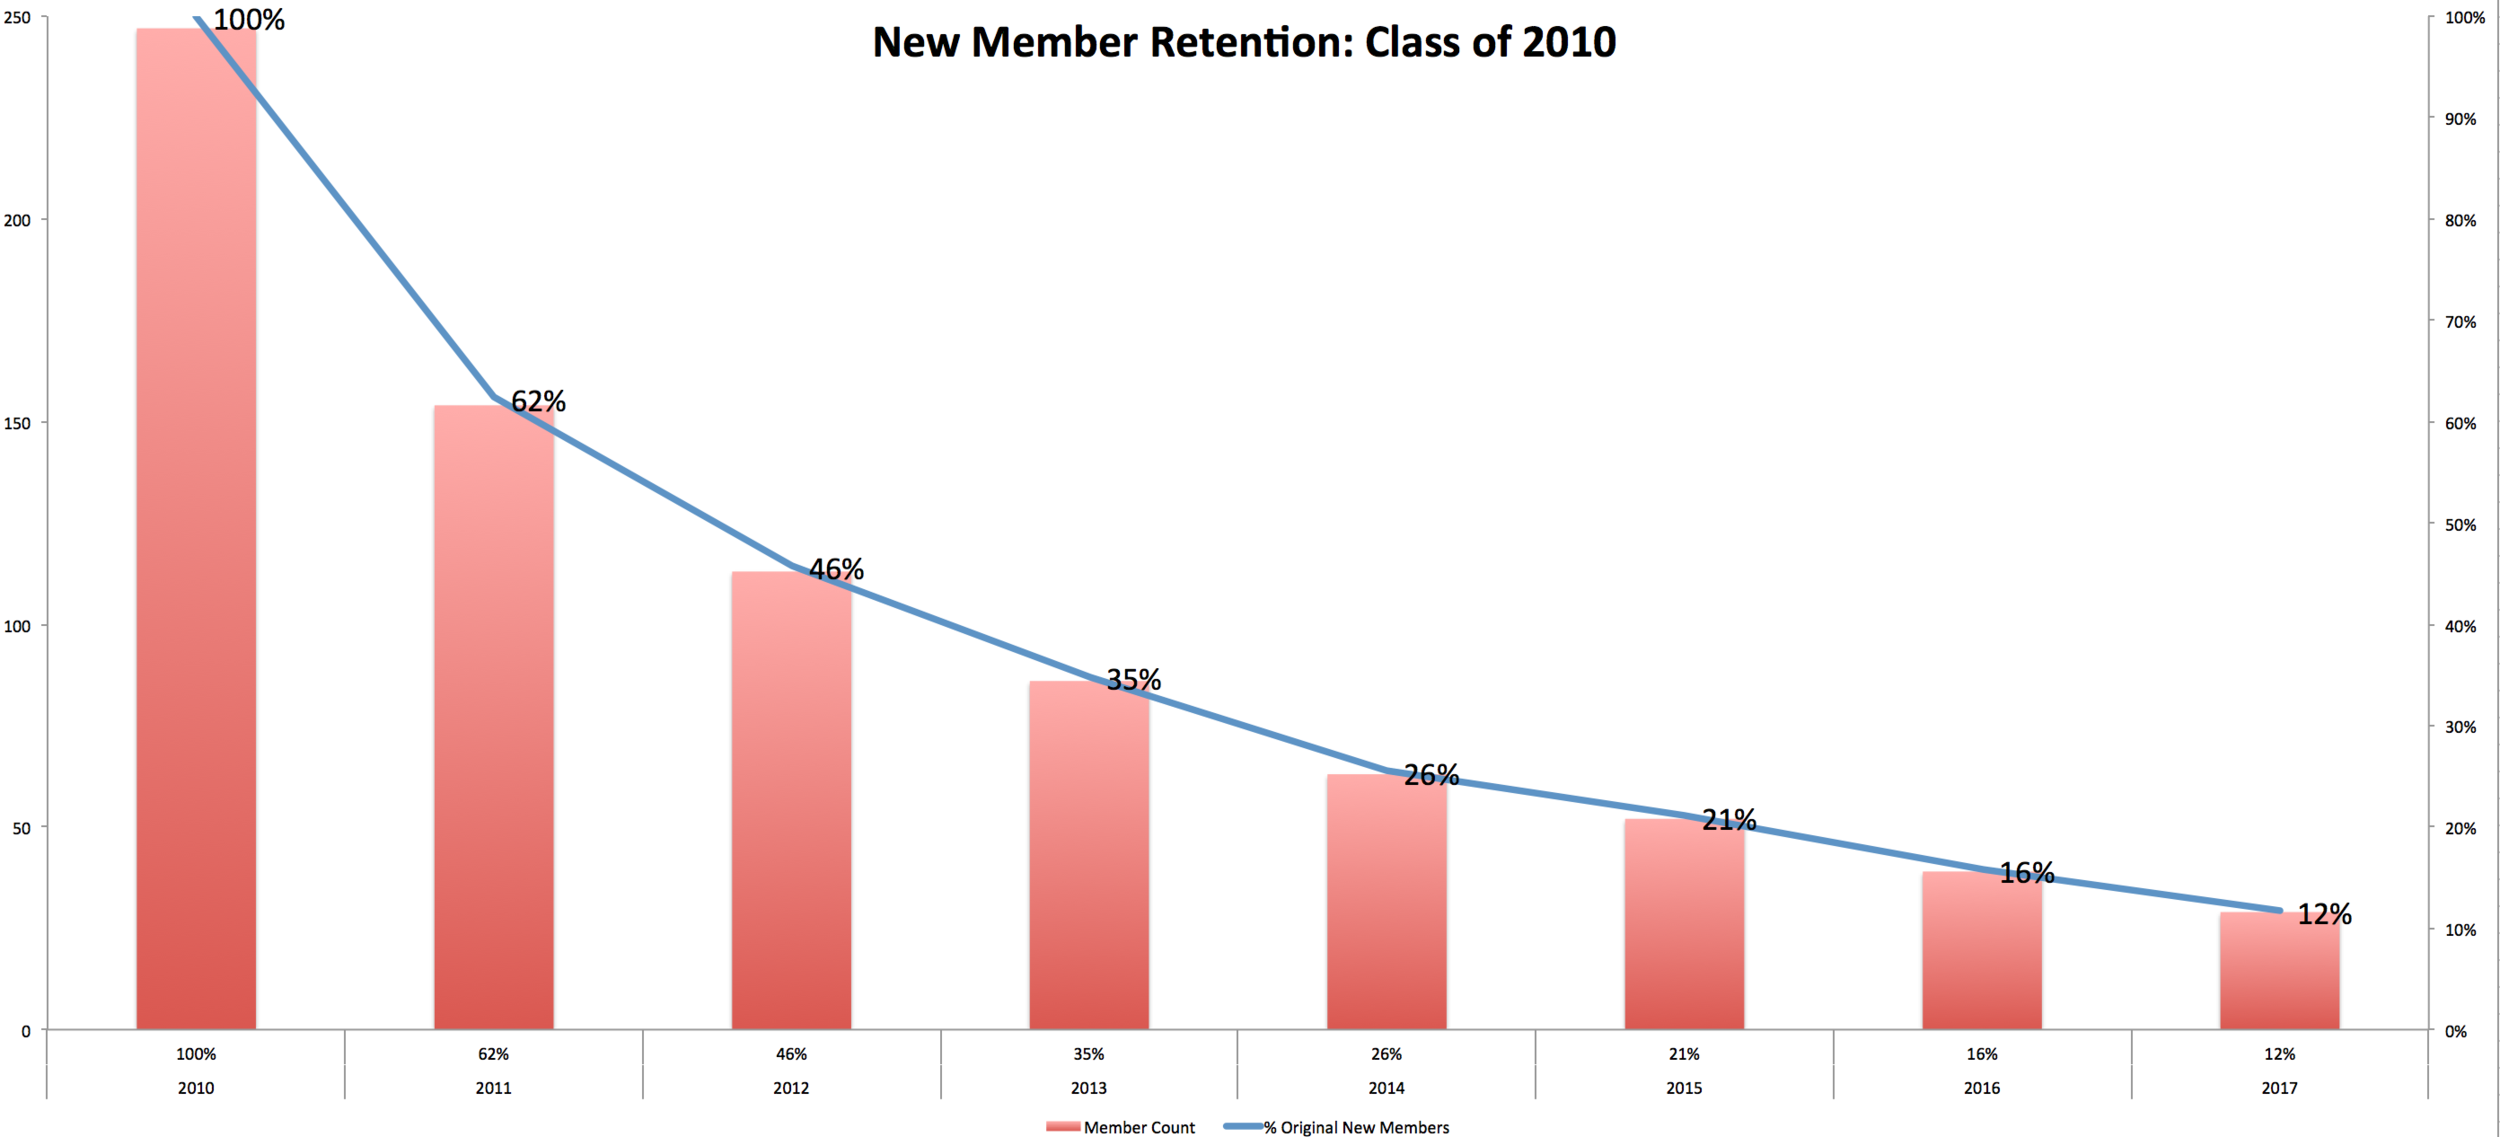 The progression of the 250-strong class of 2010: just 62% of racers who joined the club in calendar year 2010 renewed in 2011. From there the rate of decline slowed over time: another 16% stopped racing before the 2012 season, 11% before the 2013 and 9% before the 2014 season. Of the 247 new members joining in 2010 just 29 racers remained active in 2017.